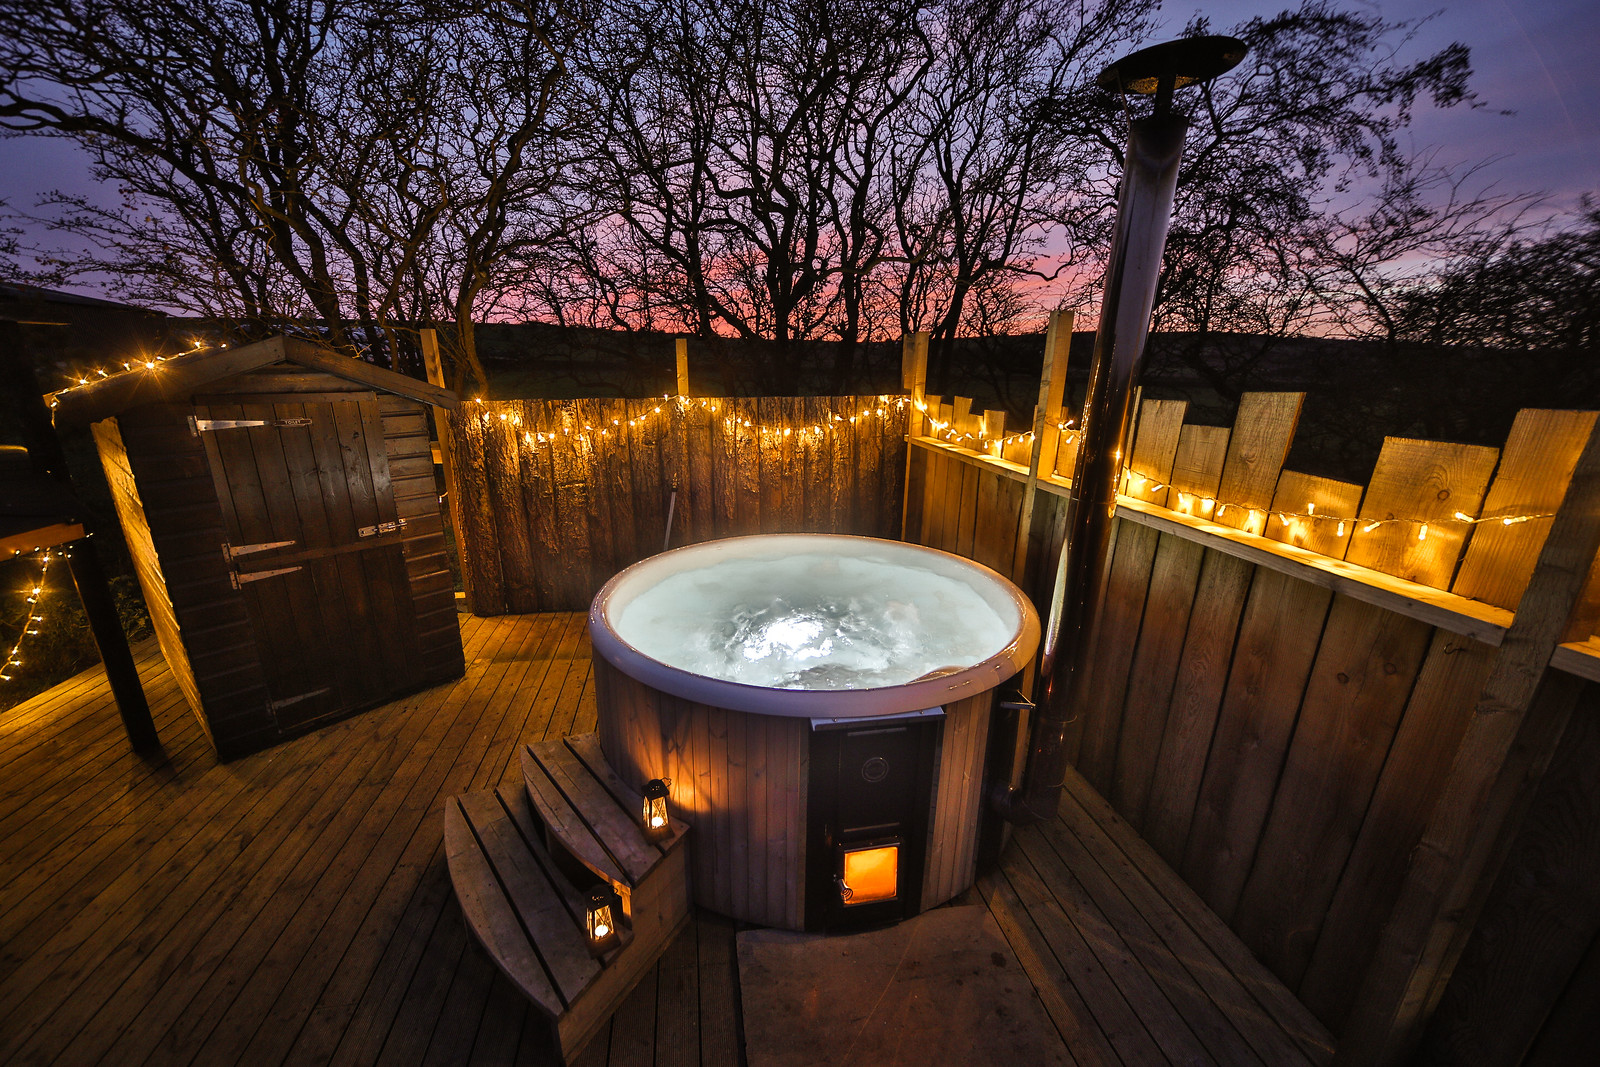 Peak District lodges with hot tubs